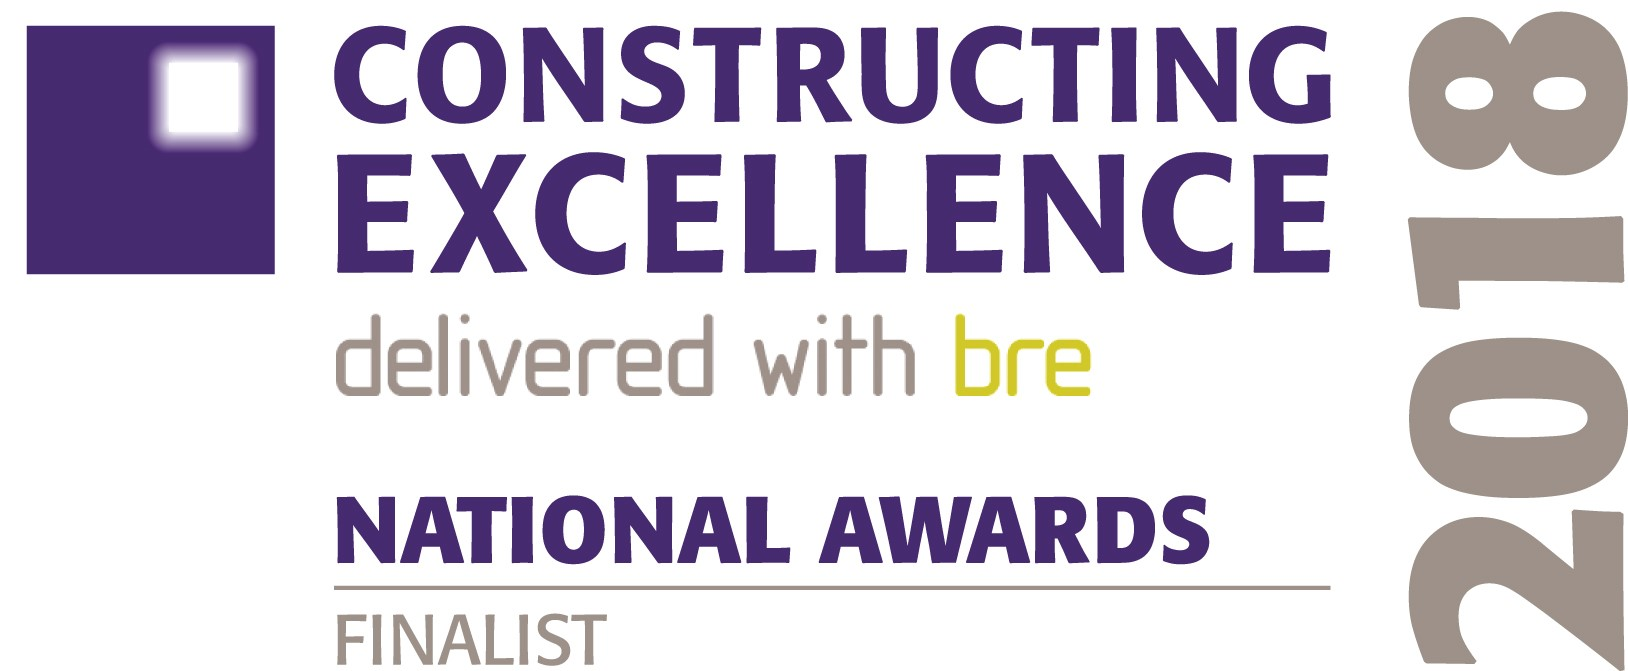 HVM City shortlisted as a finalist for National Construction Excellence Awards 2018